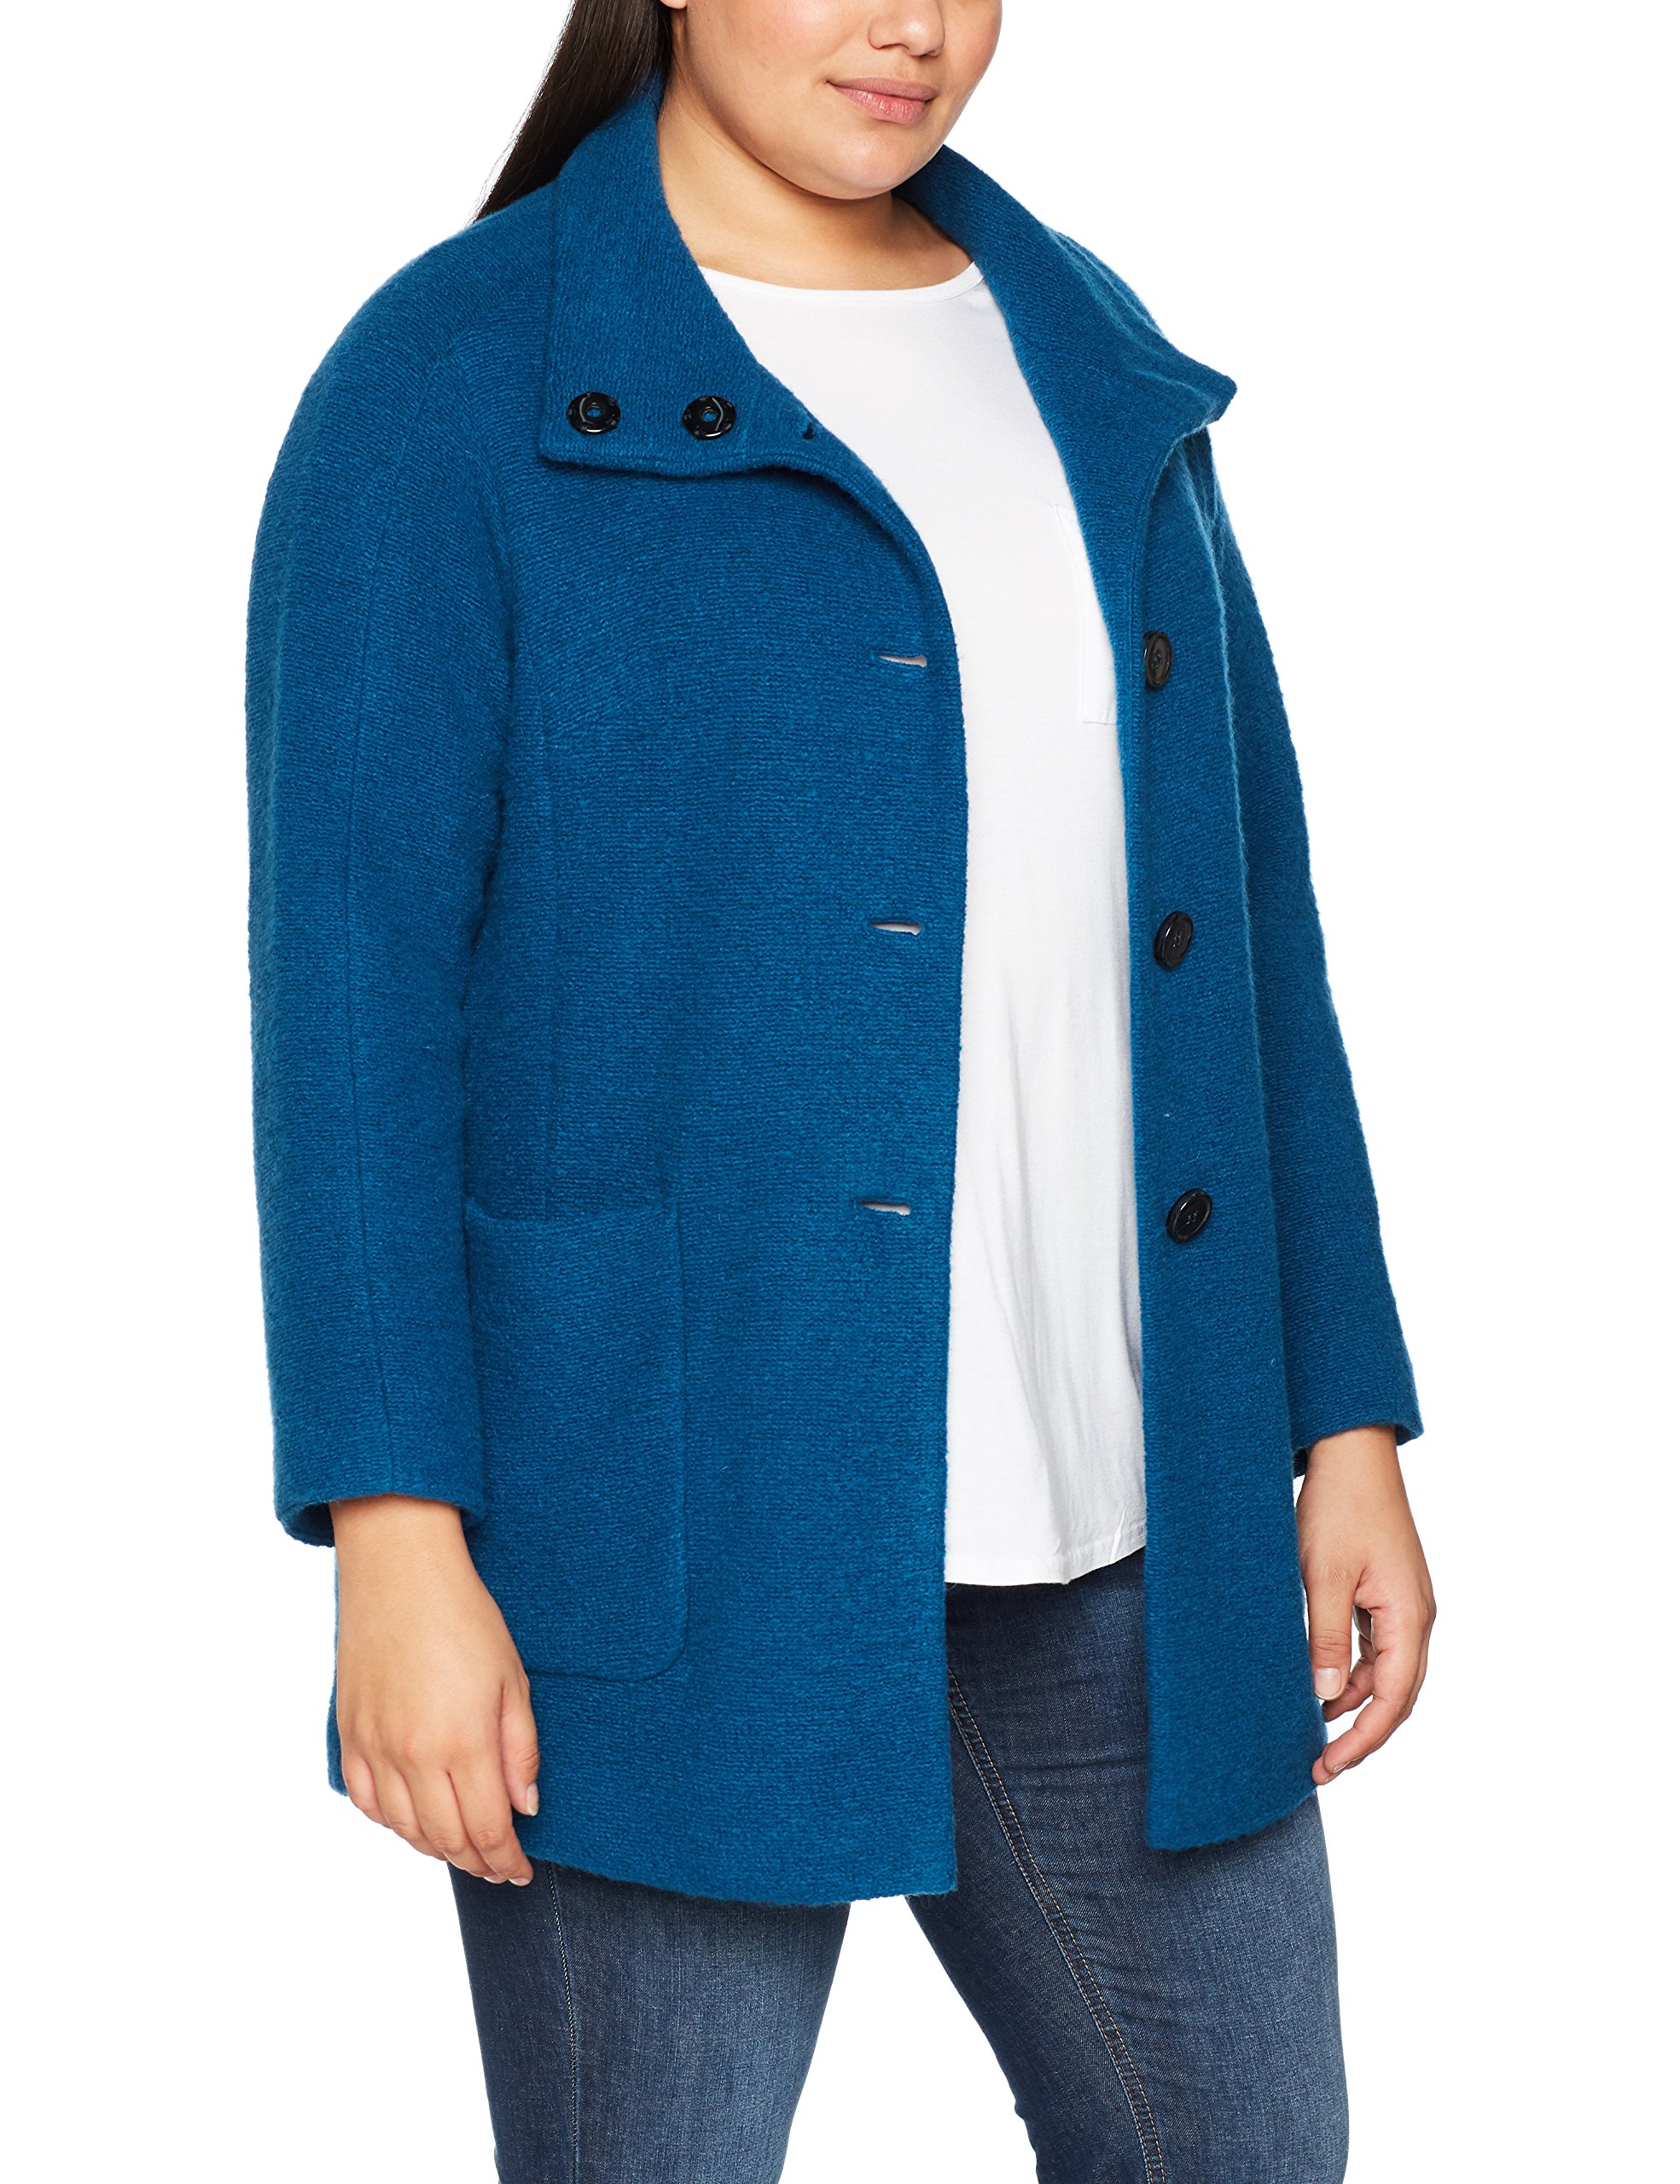 Femme BlousonTürkisvibrant Out And 807741 Samoon Mois Teal About 0OX8kwNnP